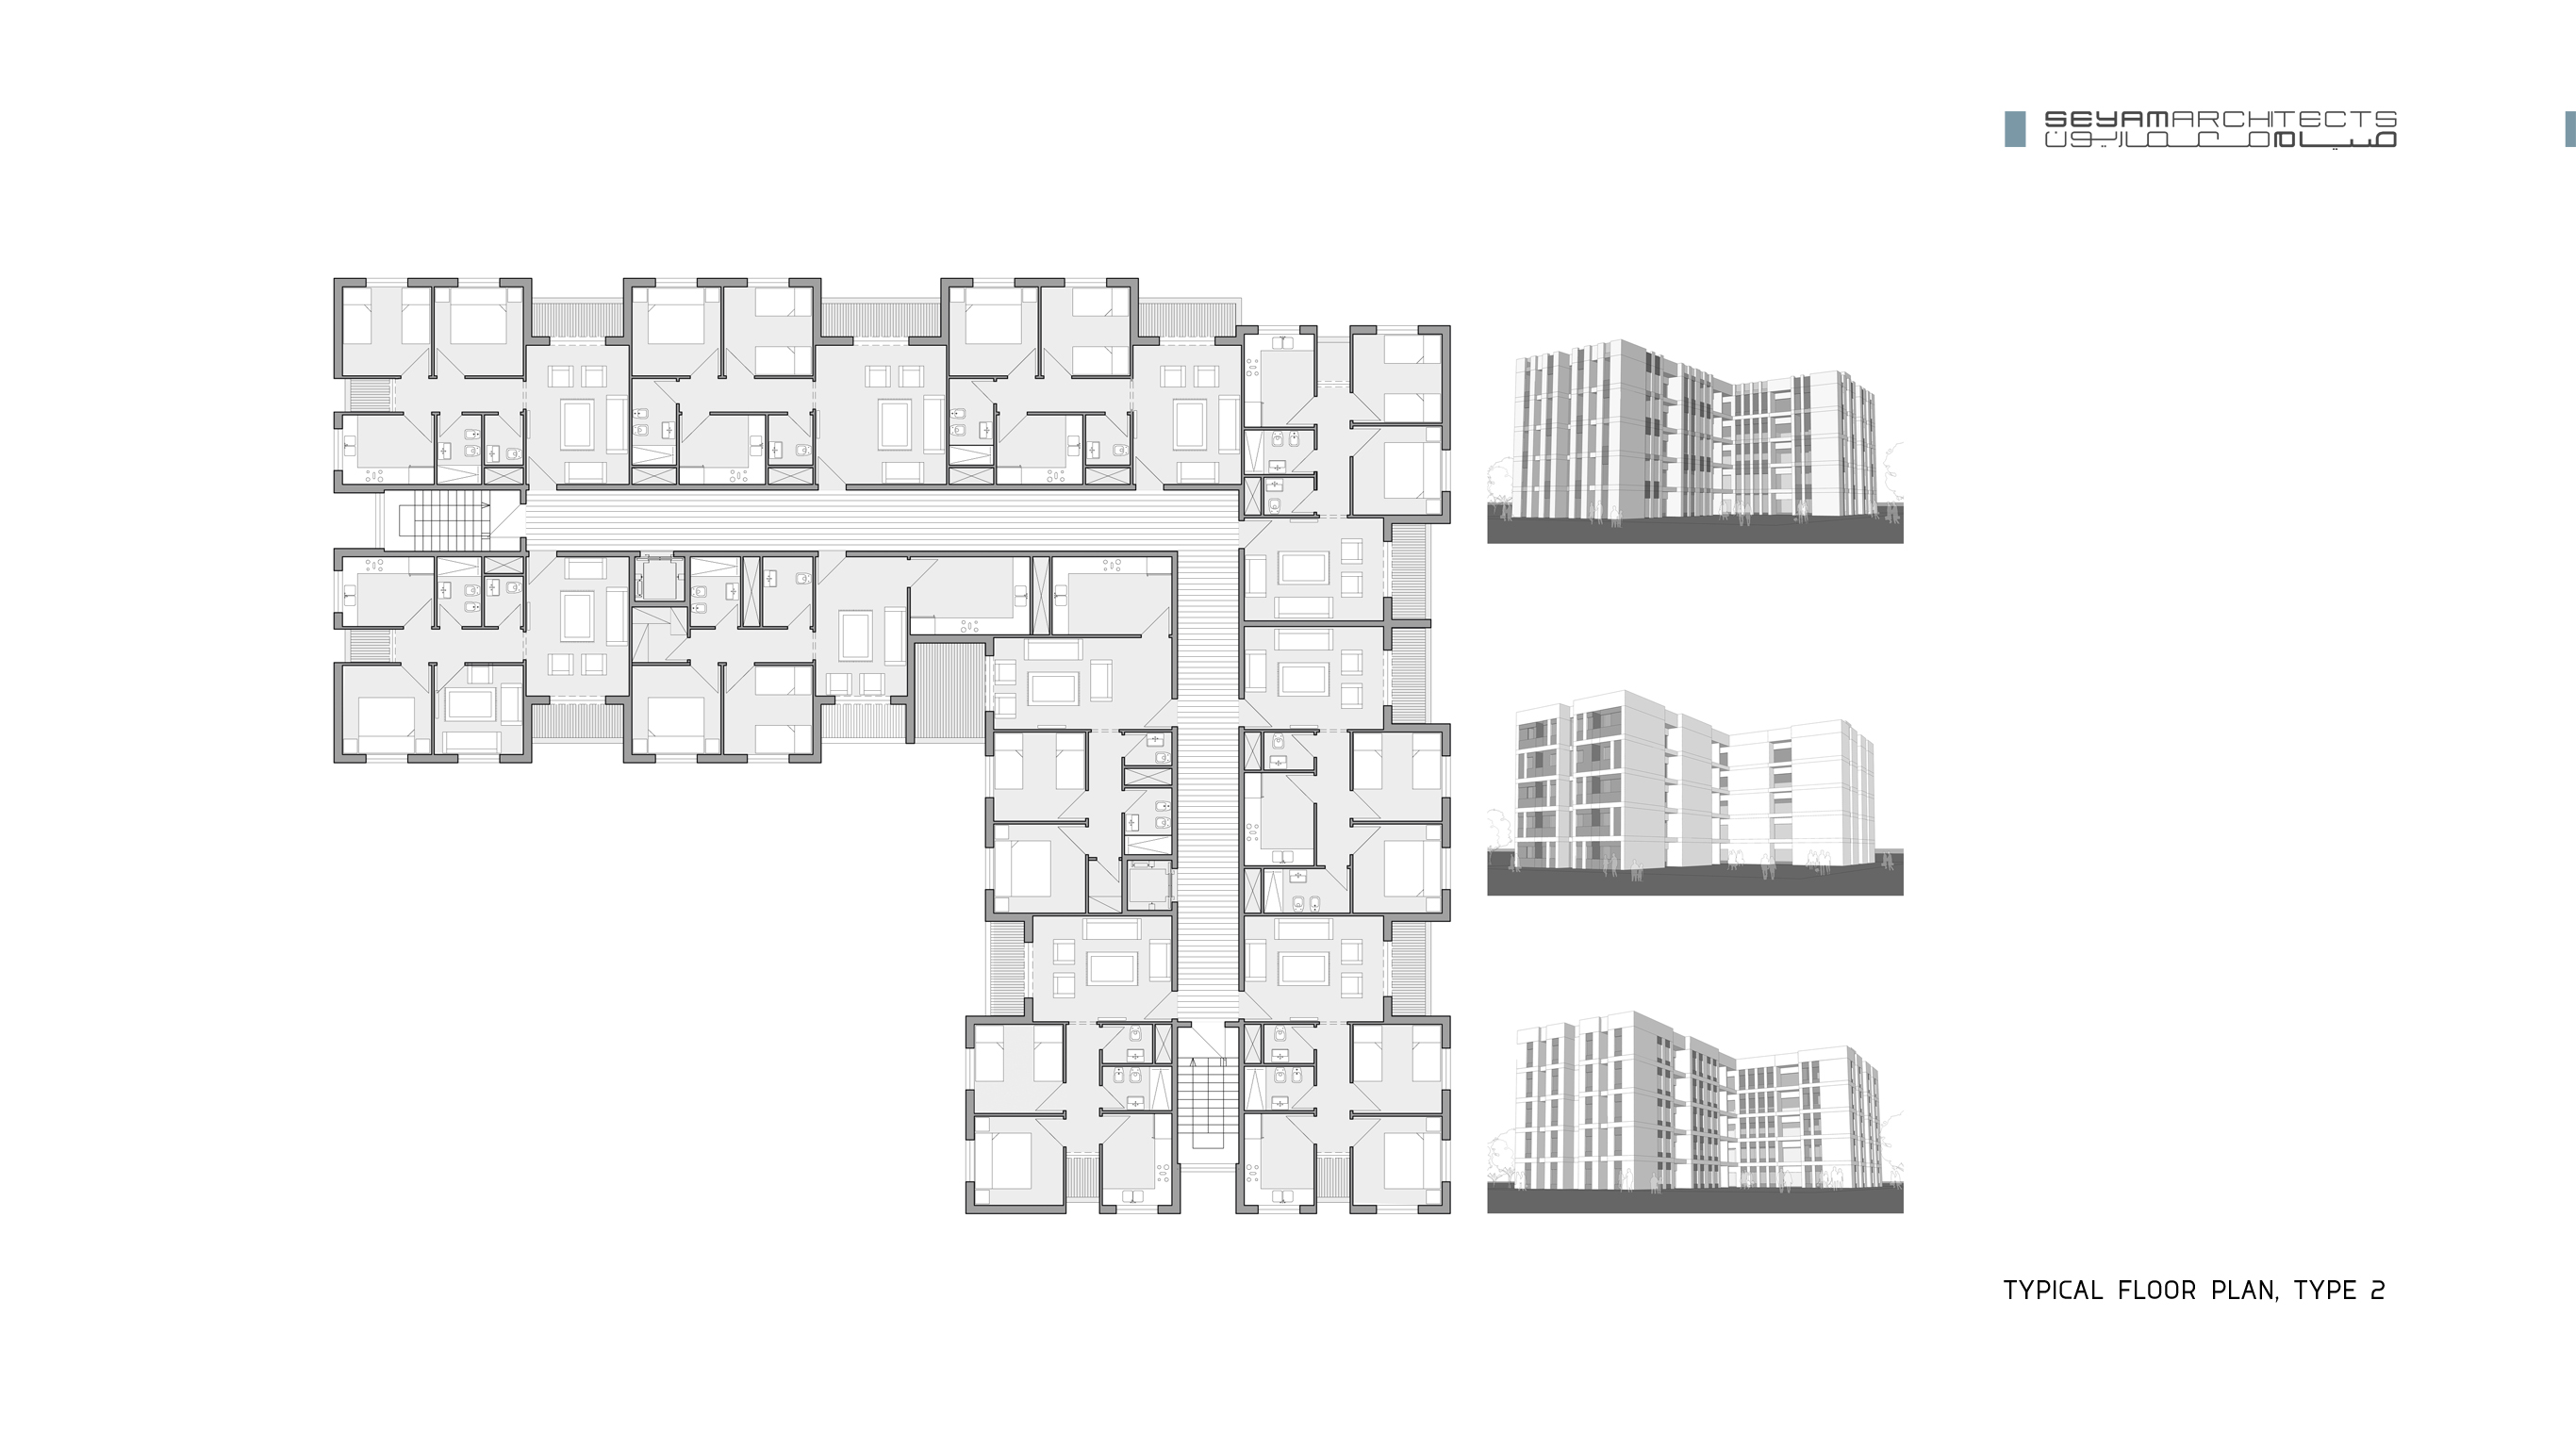 09 typical floor plan, type 2